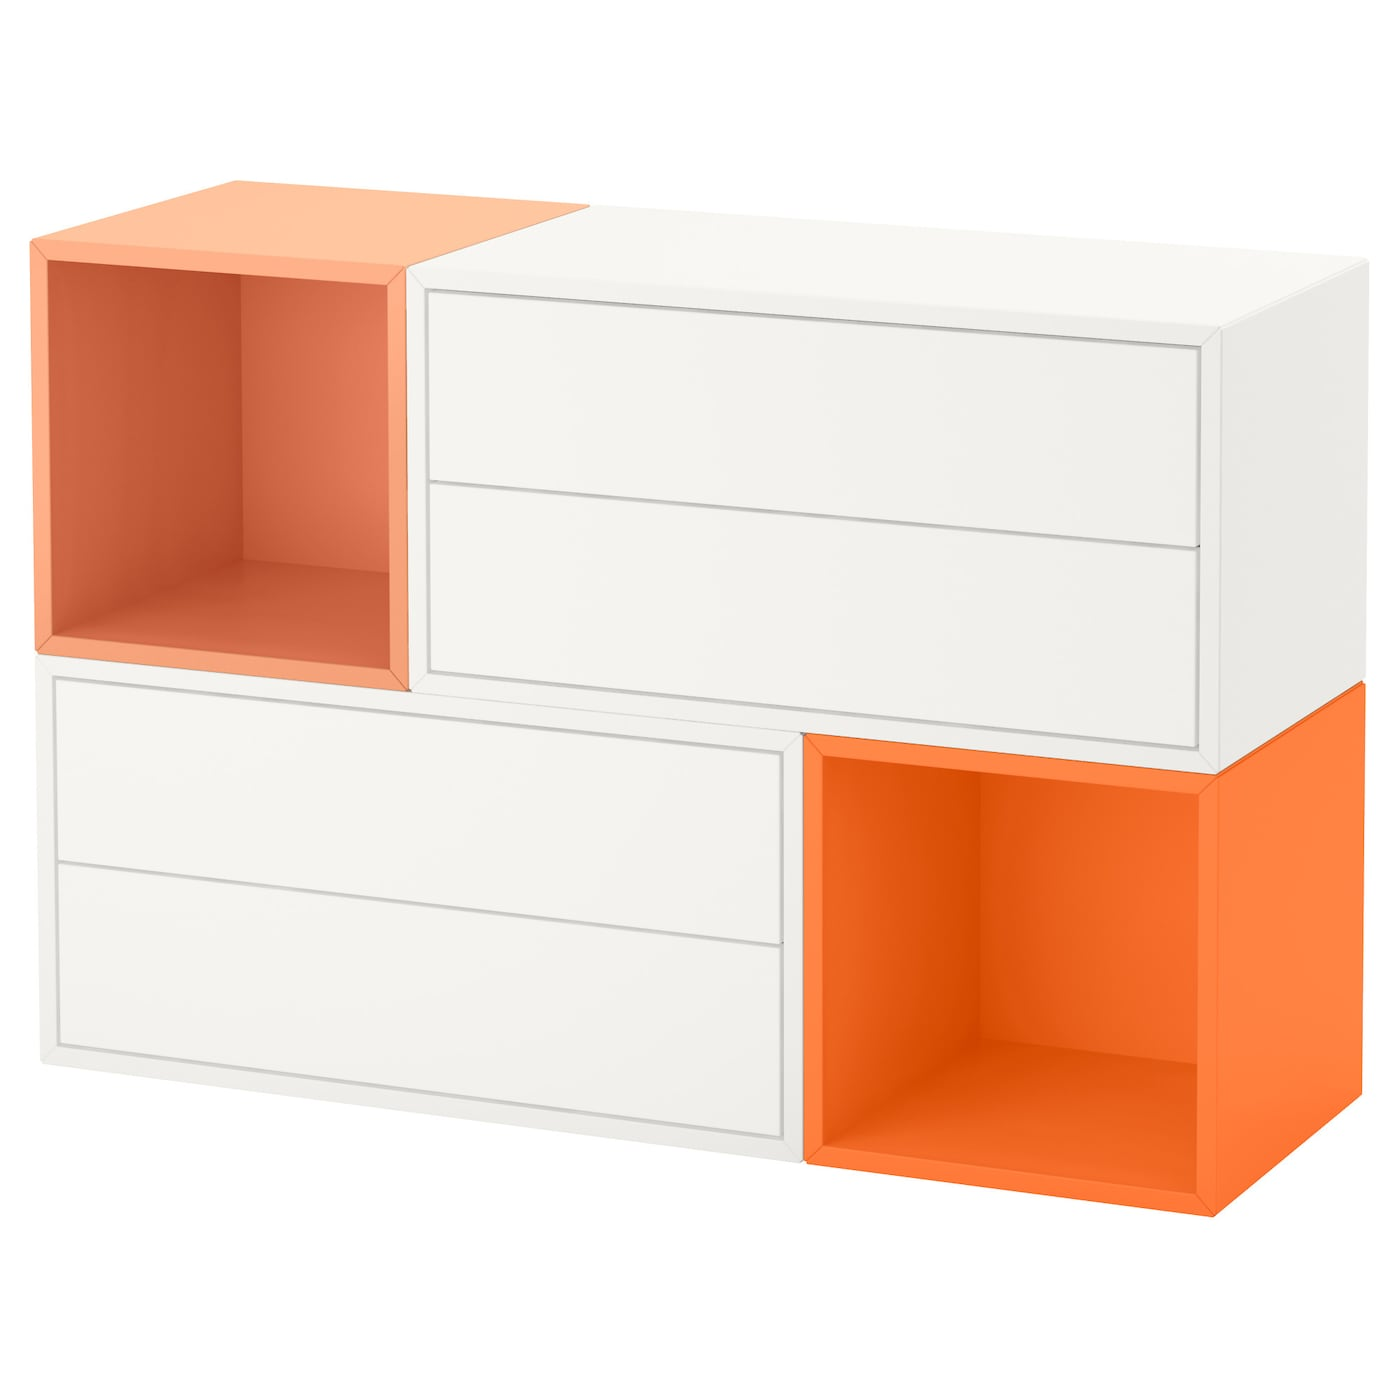 eket wall mounted cabinet combination white orange light orange 105 x 35 x 70 cm ikea. Black Bedroom Furniture Sets. Home Design Ideas